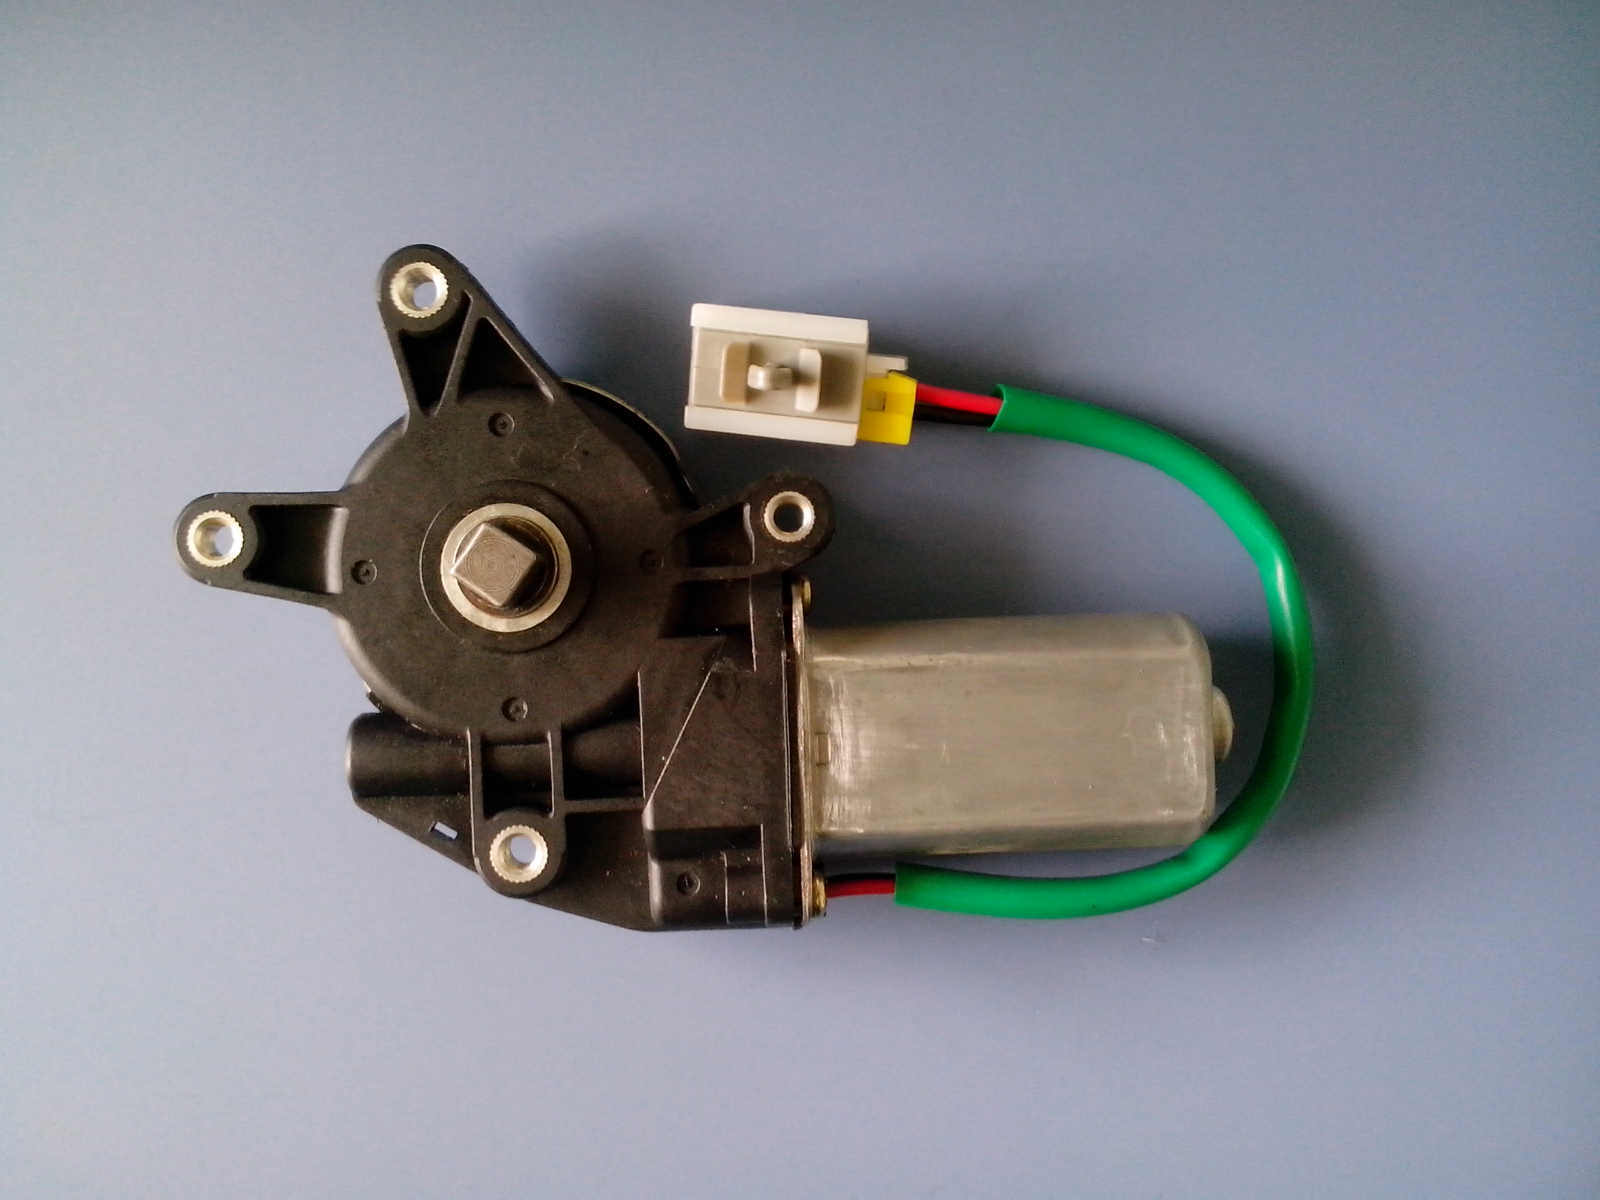 China square shaft electric car power window motor 12v for How much to fix car window motor